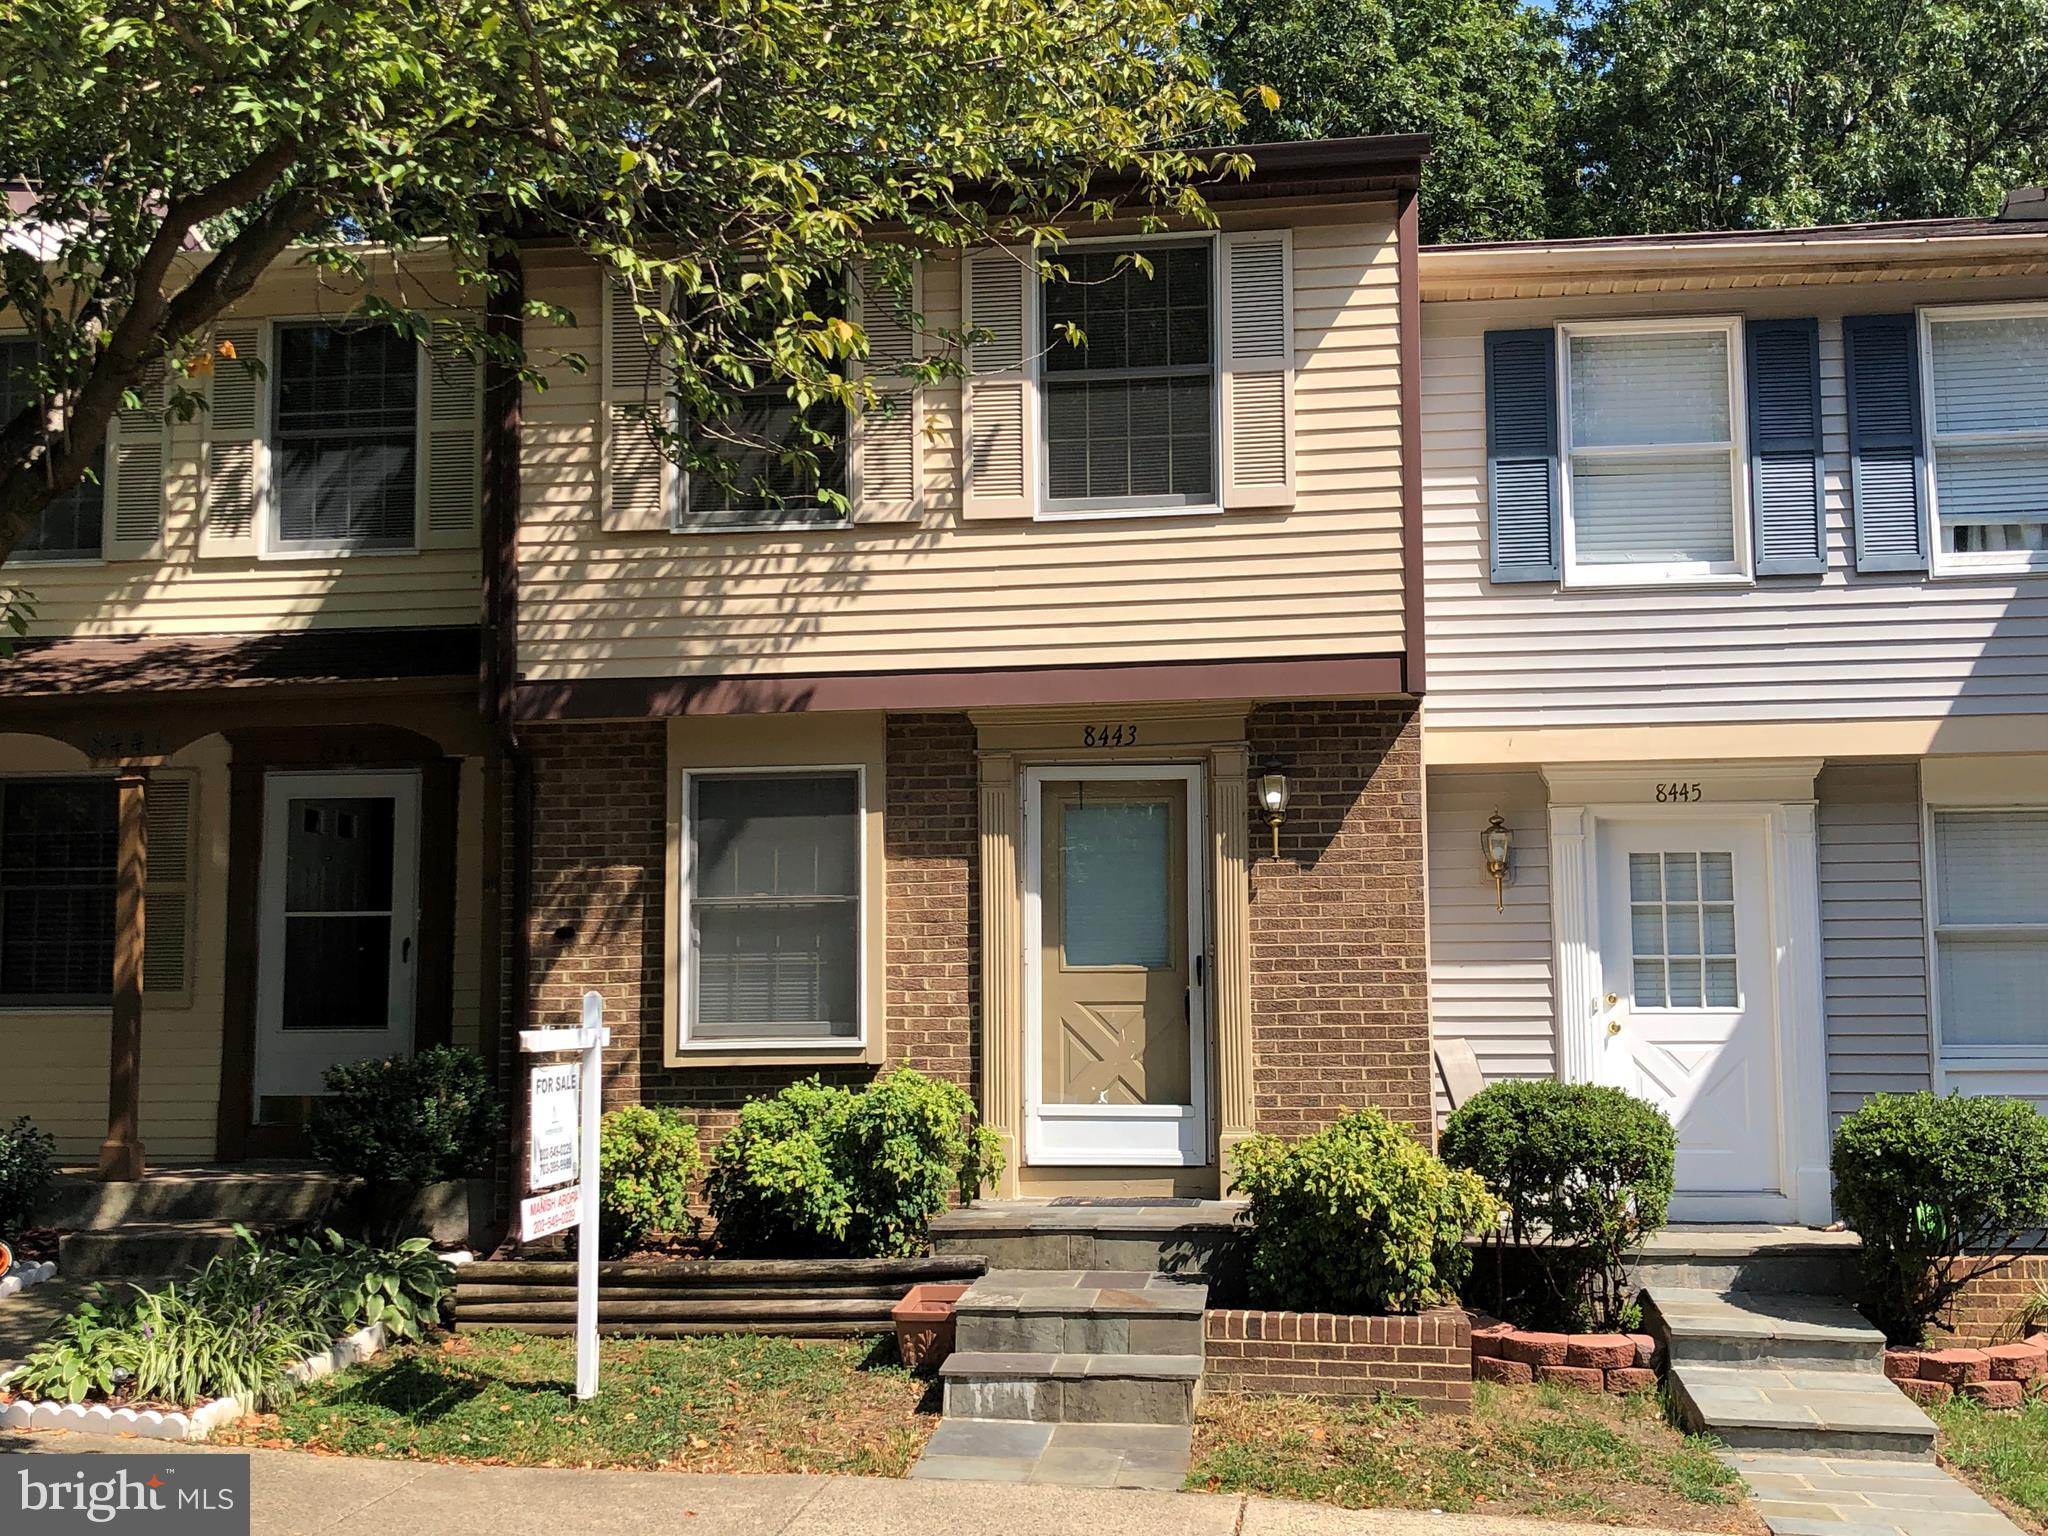 Come see this fantastic 3-level townhouse in the sought-after Newington Forest community. This well-maintained home features remodeled kitchen with~new cabinets,~SS appliances, and granite counter tops. Custom paint, hardwood floor on main level.  Brand new carpet on upper level, New engineered wood floor in the basement.  Newly remolded Bathroom(s), This beautiful community boasts many amenities, including bike trails, a pool, tennis and so much more! Enjoy South Run Park and South Run RECenter, and fantastic shopping and dining options including Springfield Town Center, Costco Wholesale, and Saratoga~ just to name a few! Convenient to Fort Belvoir, Metro, VRE and Commuter Lots. Don't miss out on your chance to own this great townhouse in Newington Forest--